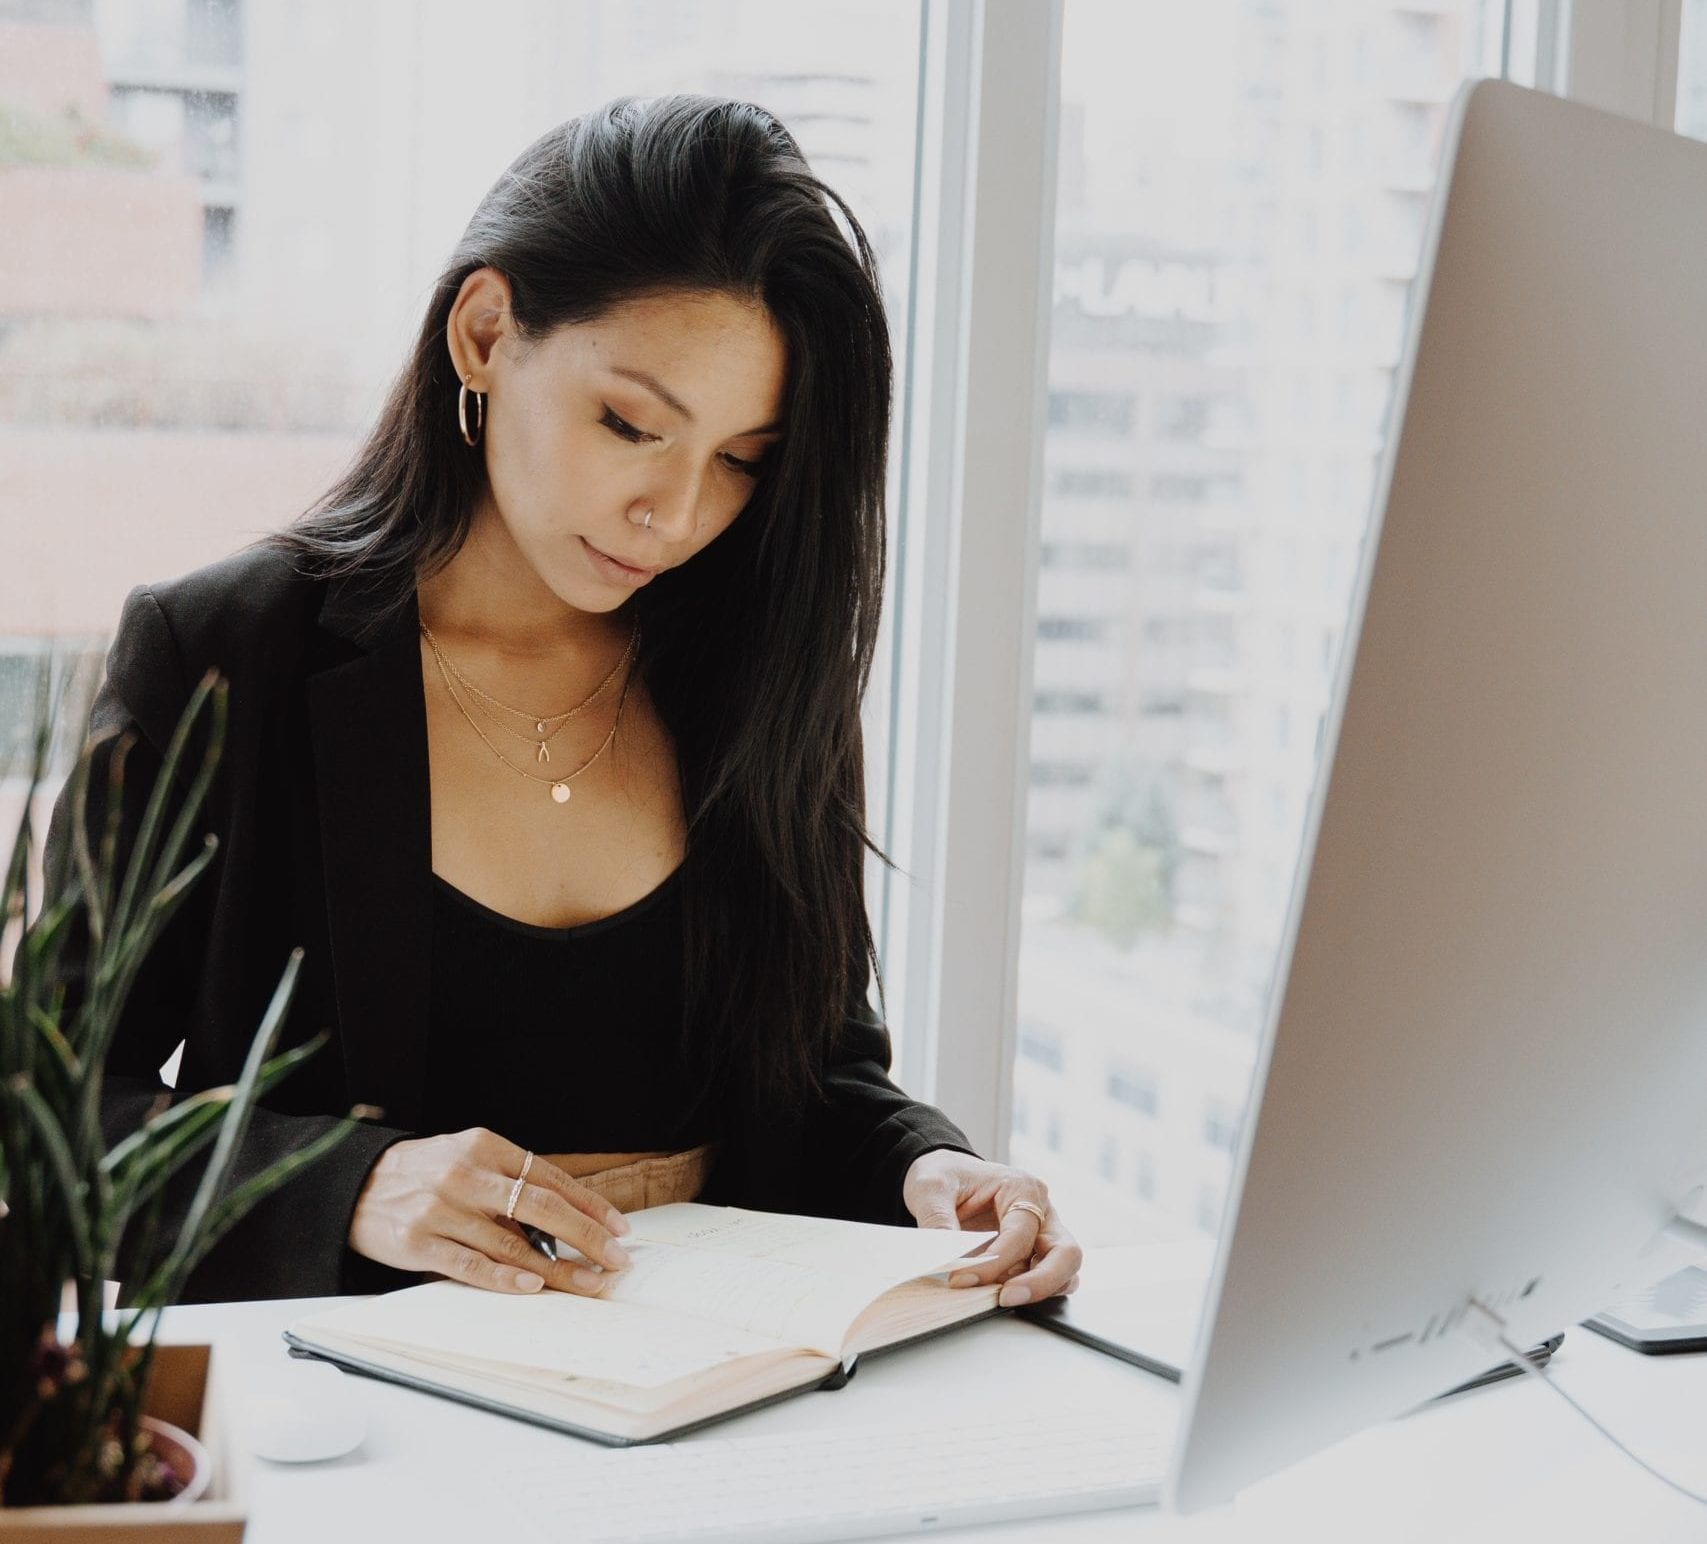 Photo: Woman at her desk writing in notebook by Keren Levand on Unsplash.